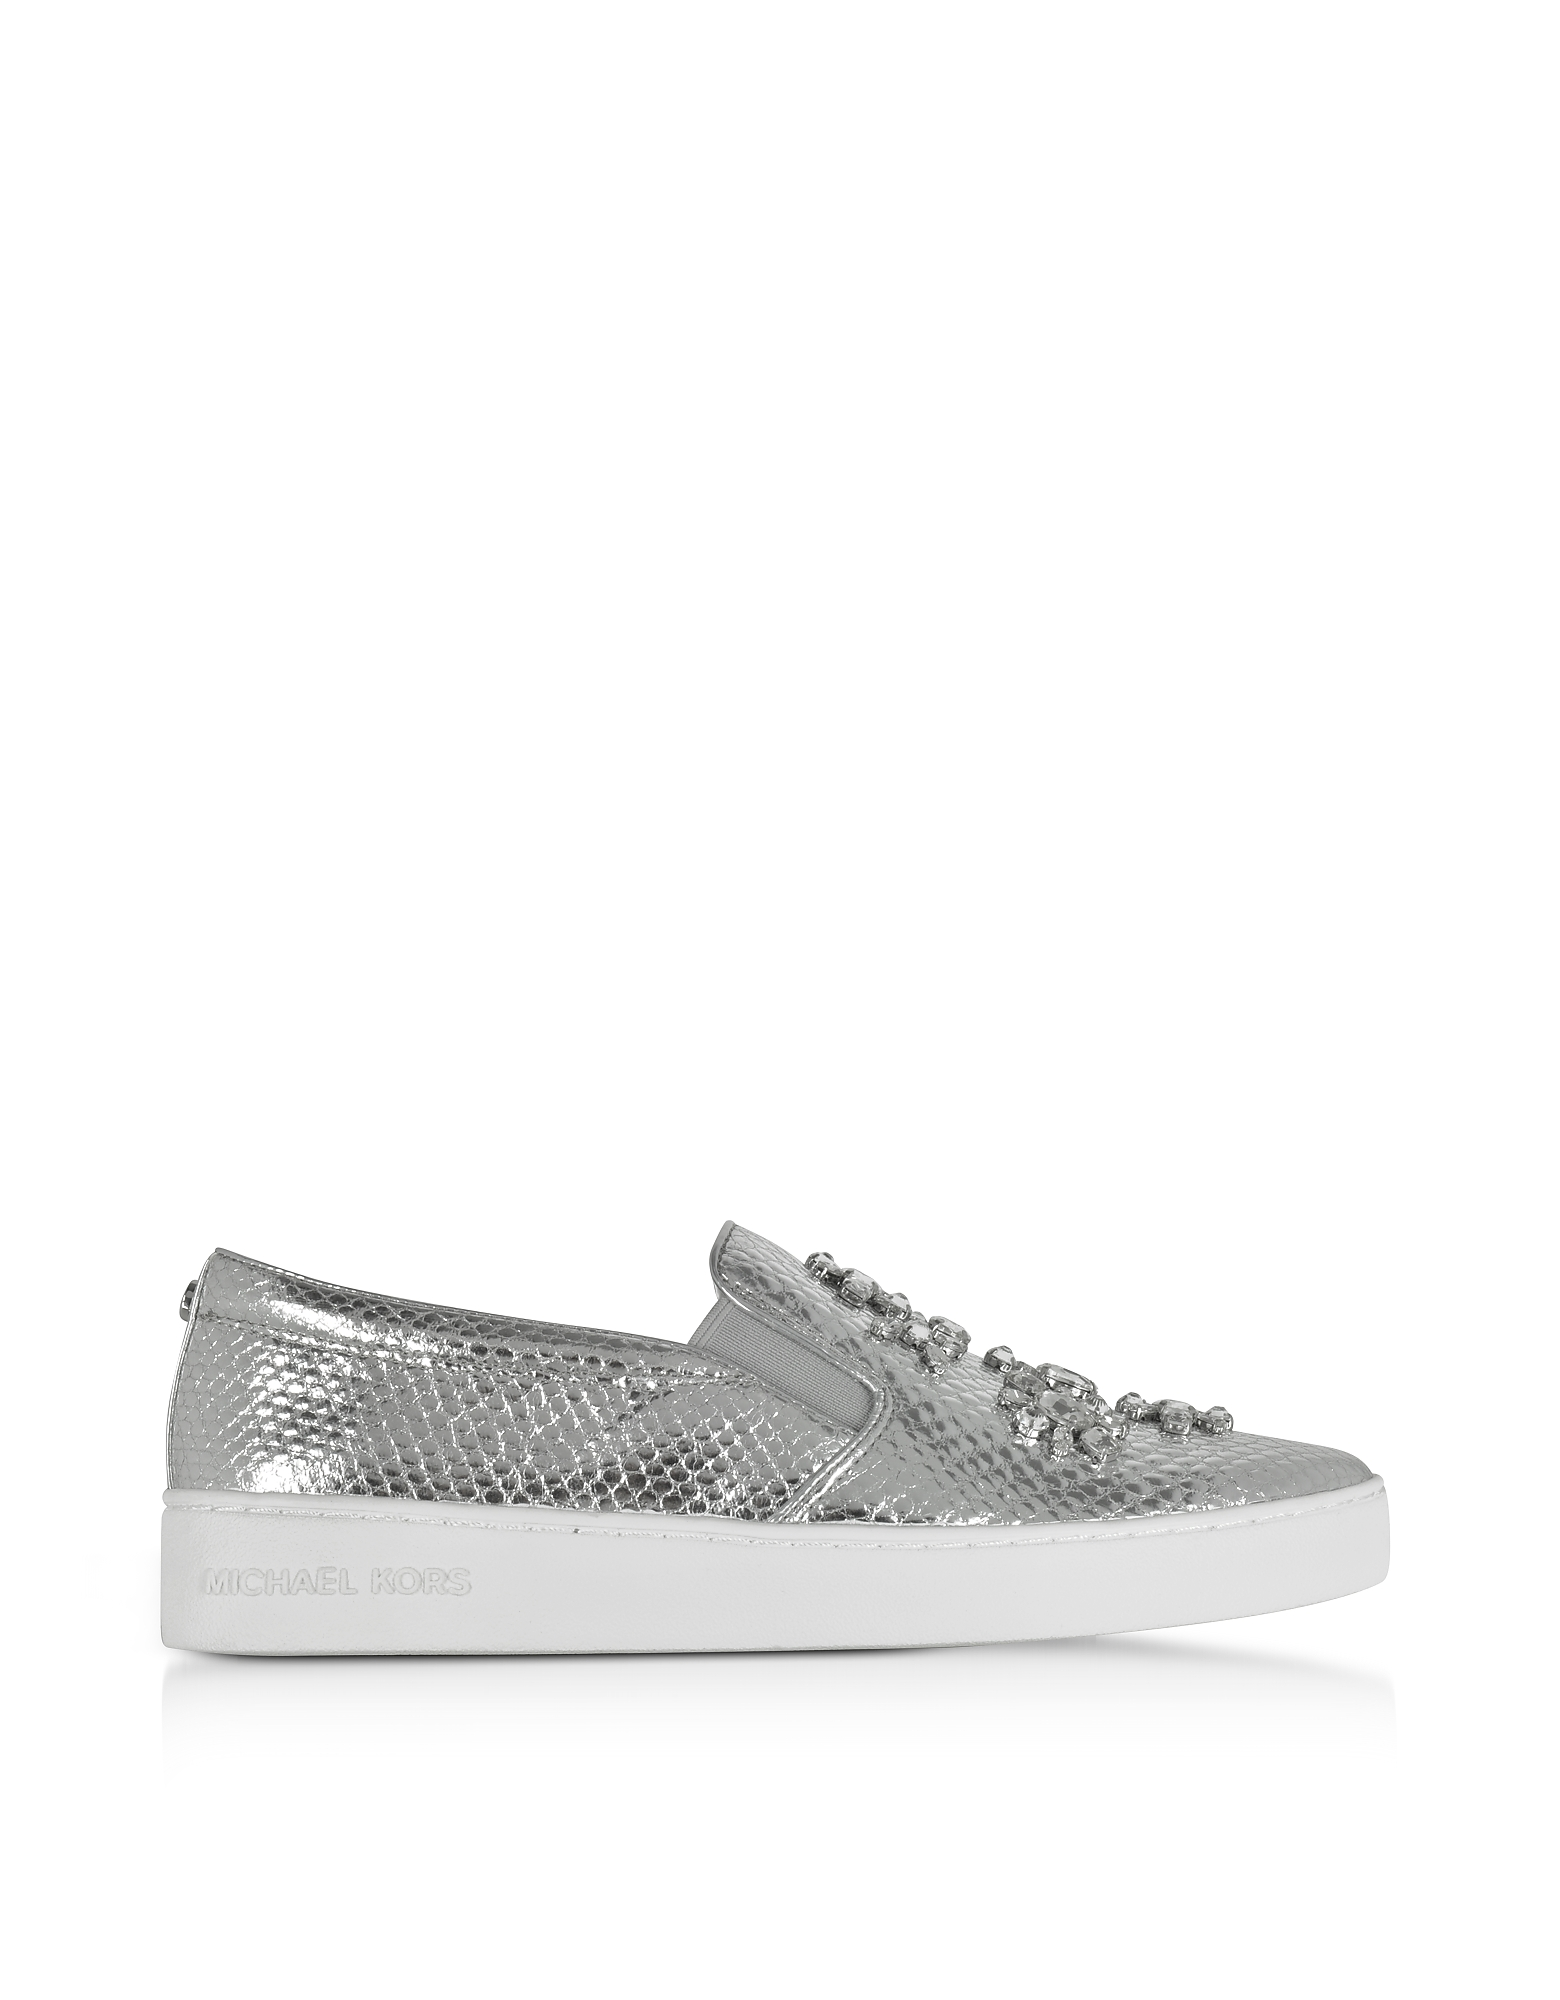 Michael Kors Shoes, Keaton Silver Metallic Embossed Snake Leather Slip On Sneakers w/Jewels